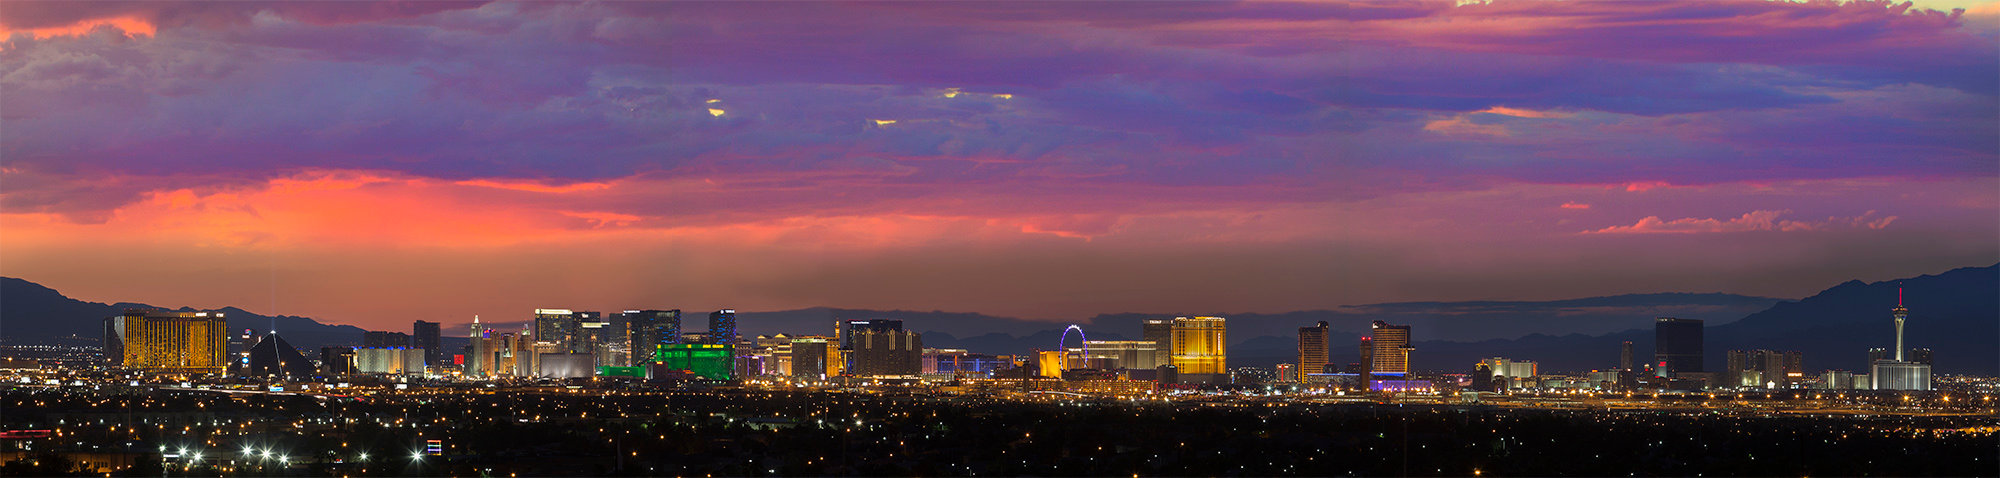 Las Vegas strip at twilight by Erin OBoyle